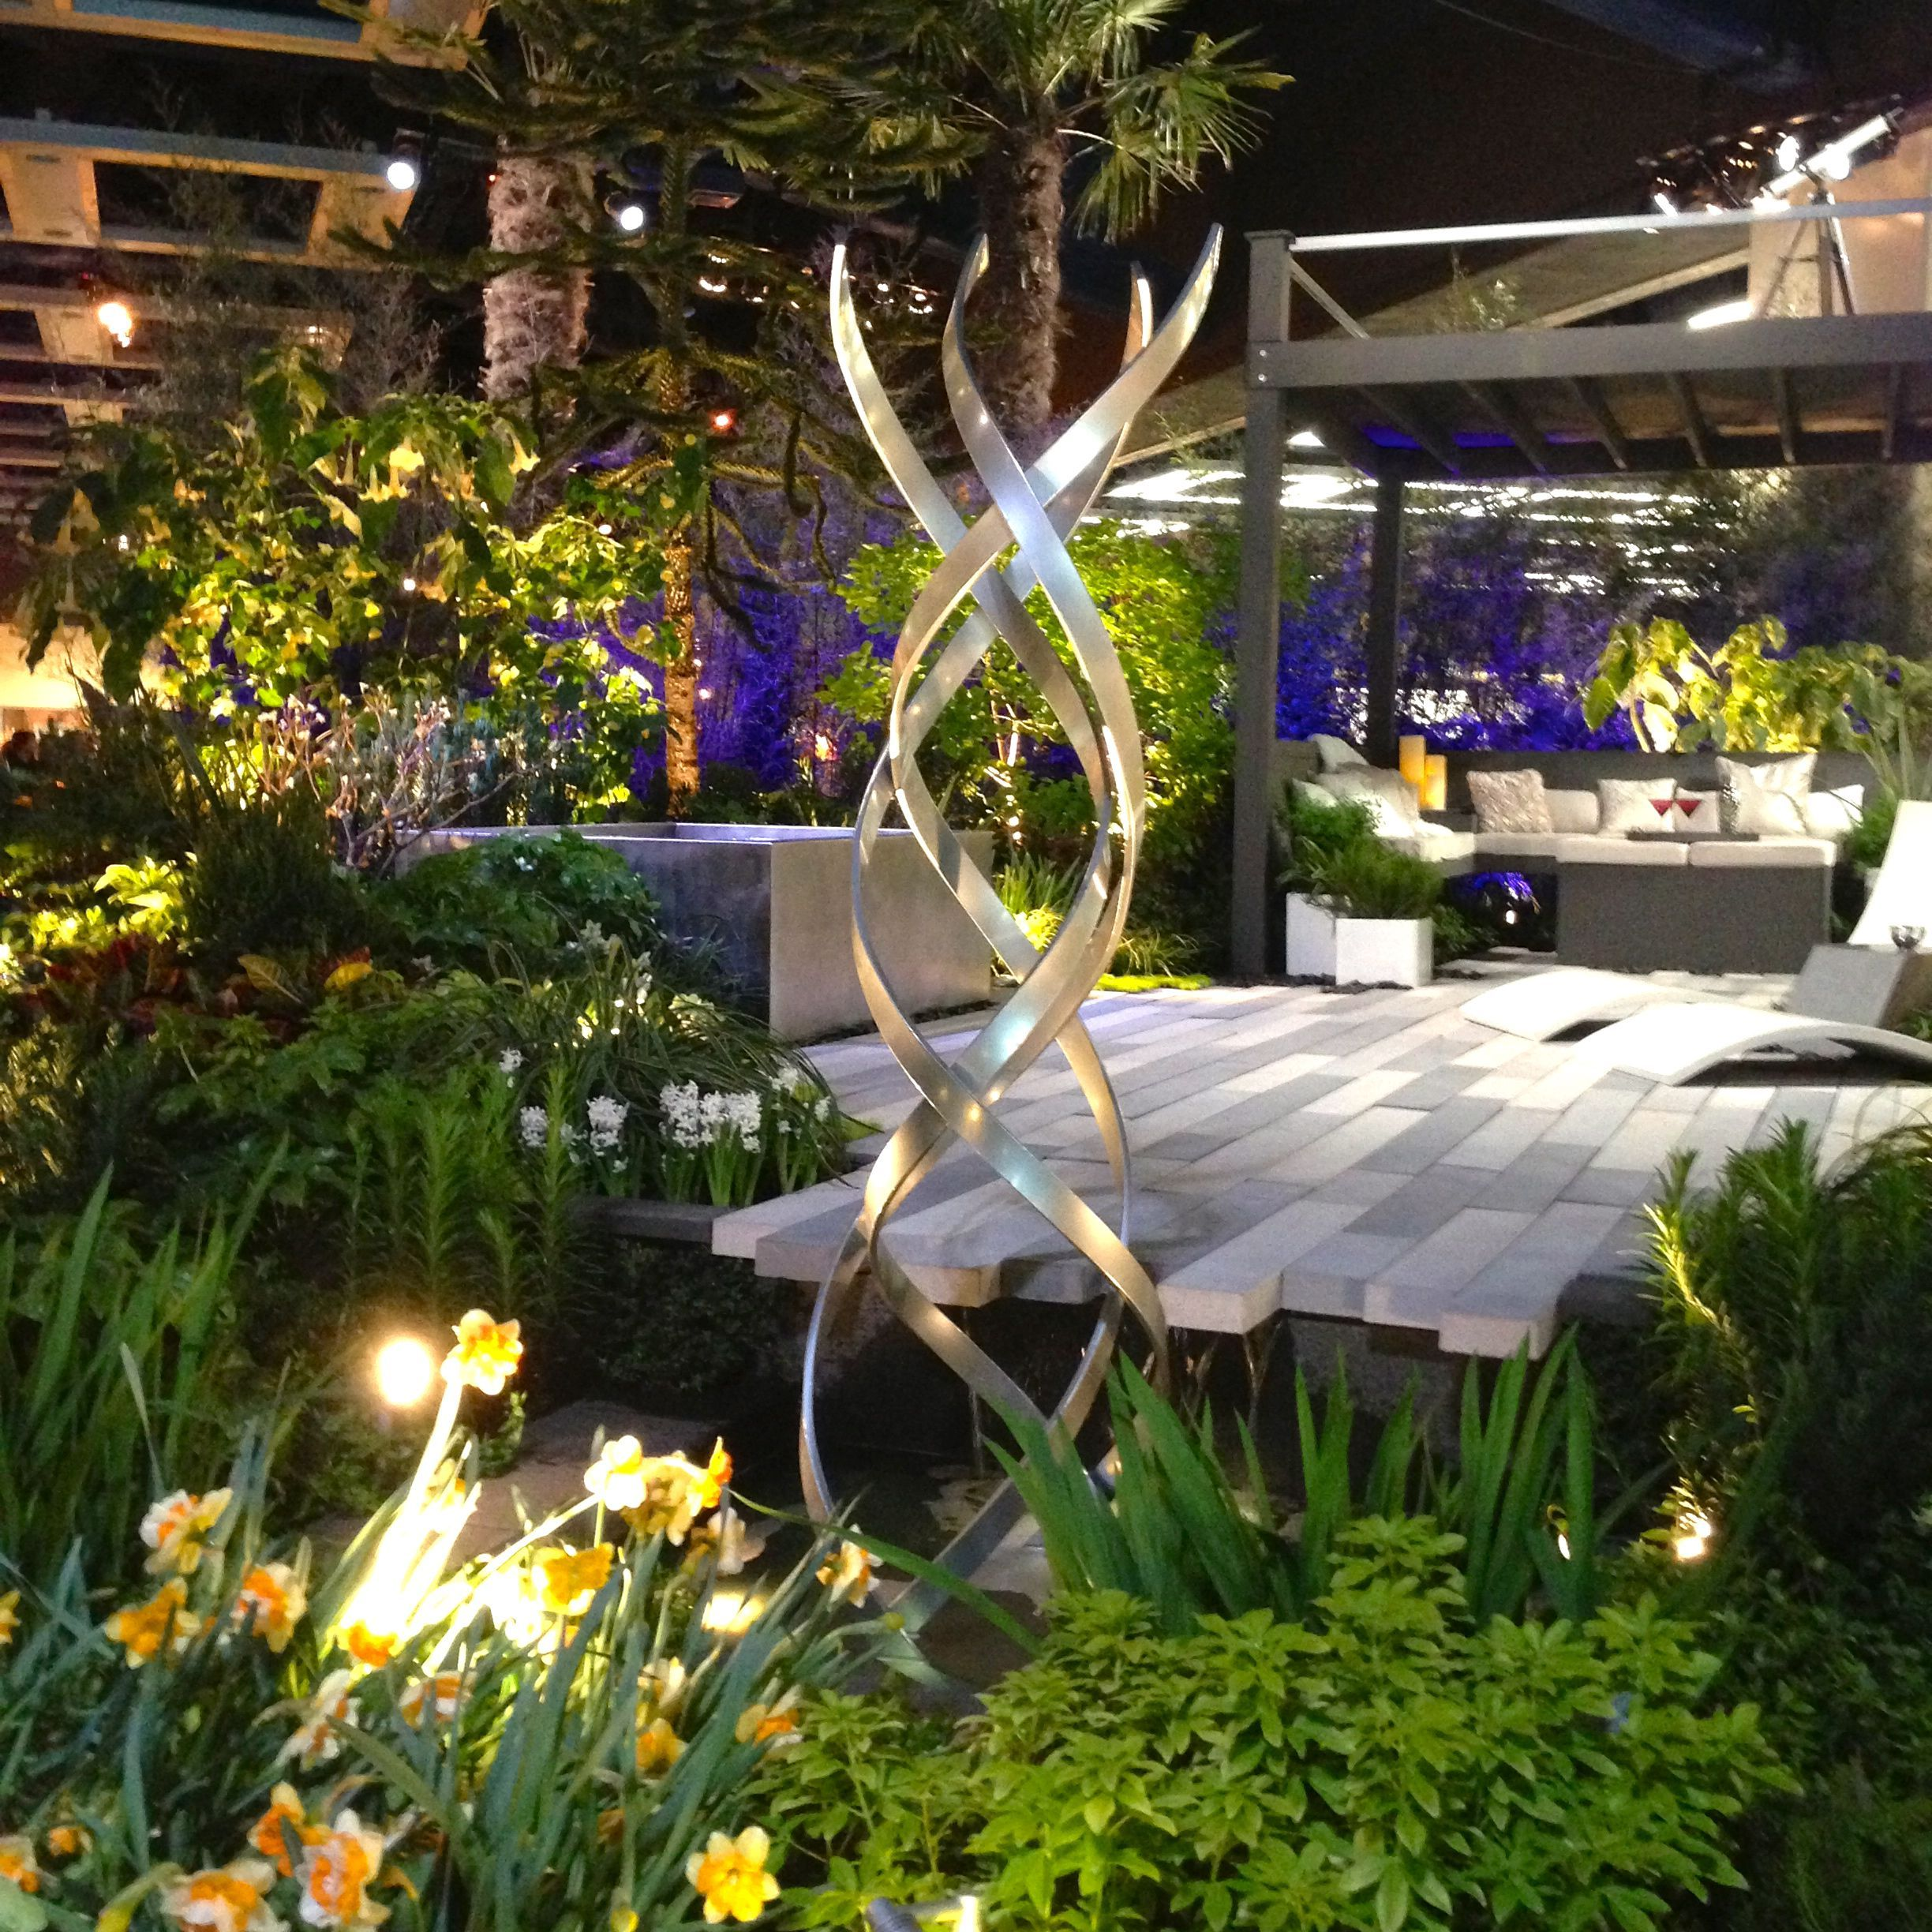 Modern Water Garden With Beautiful Lighting And Fresh Plants